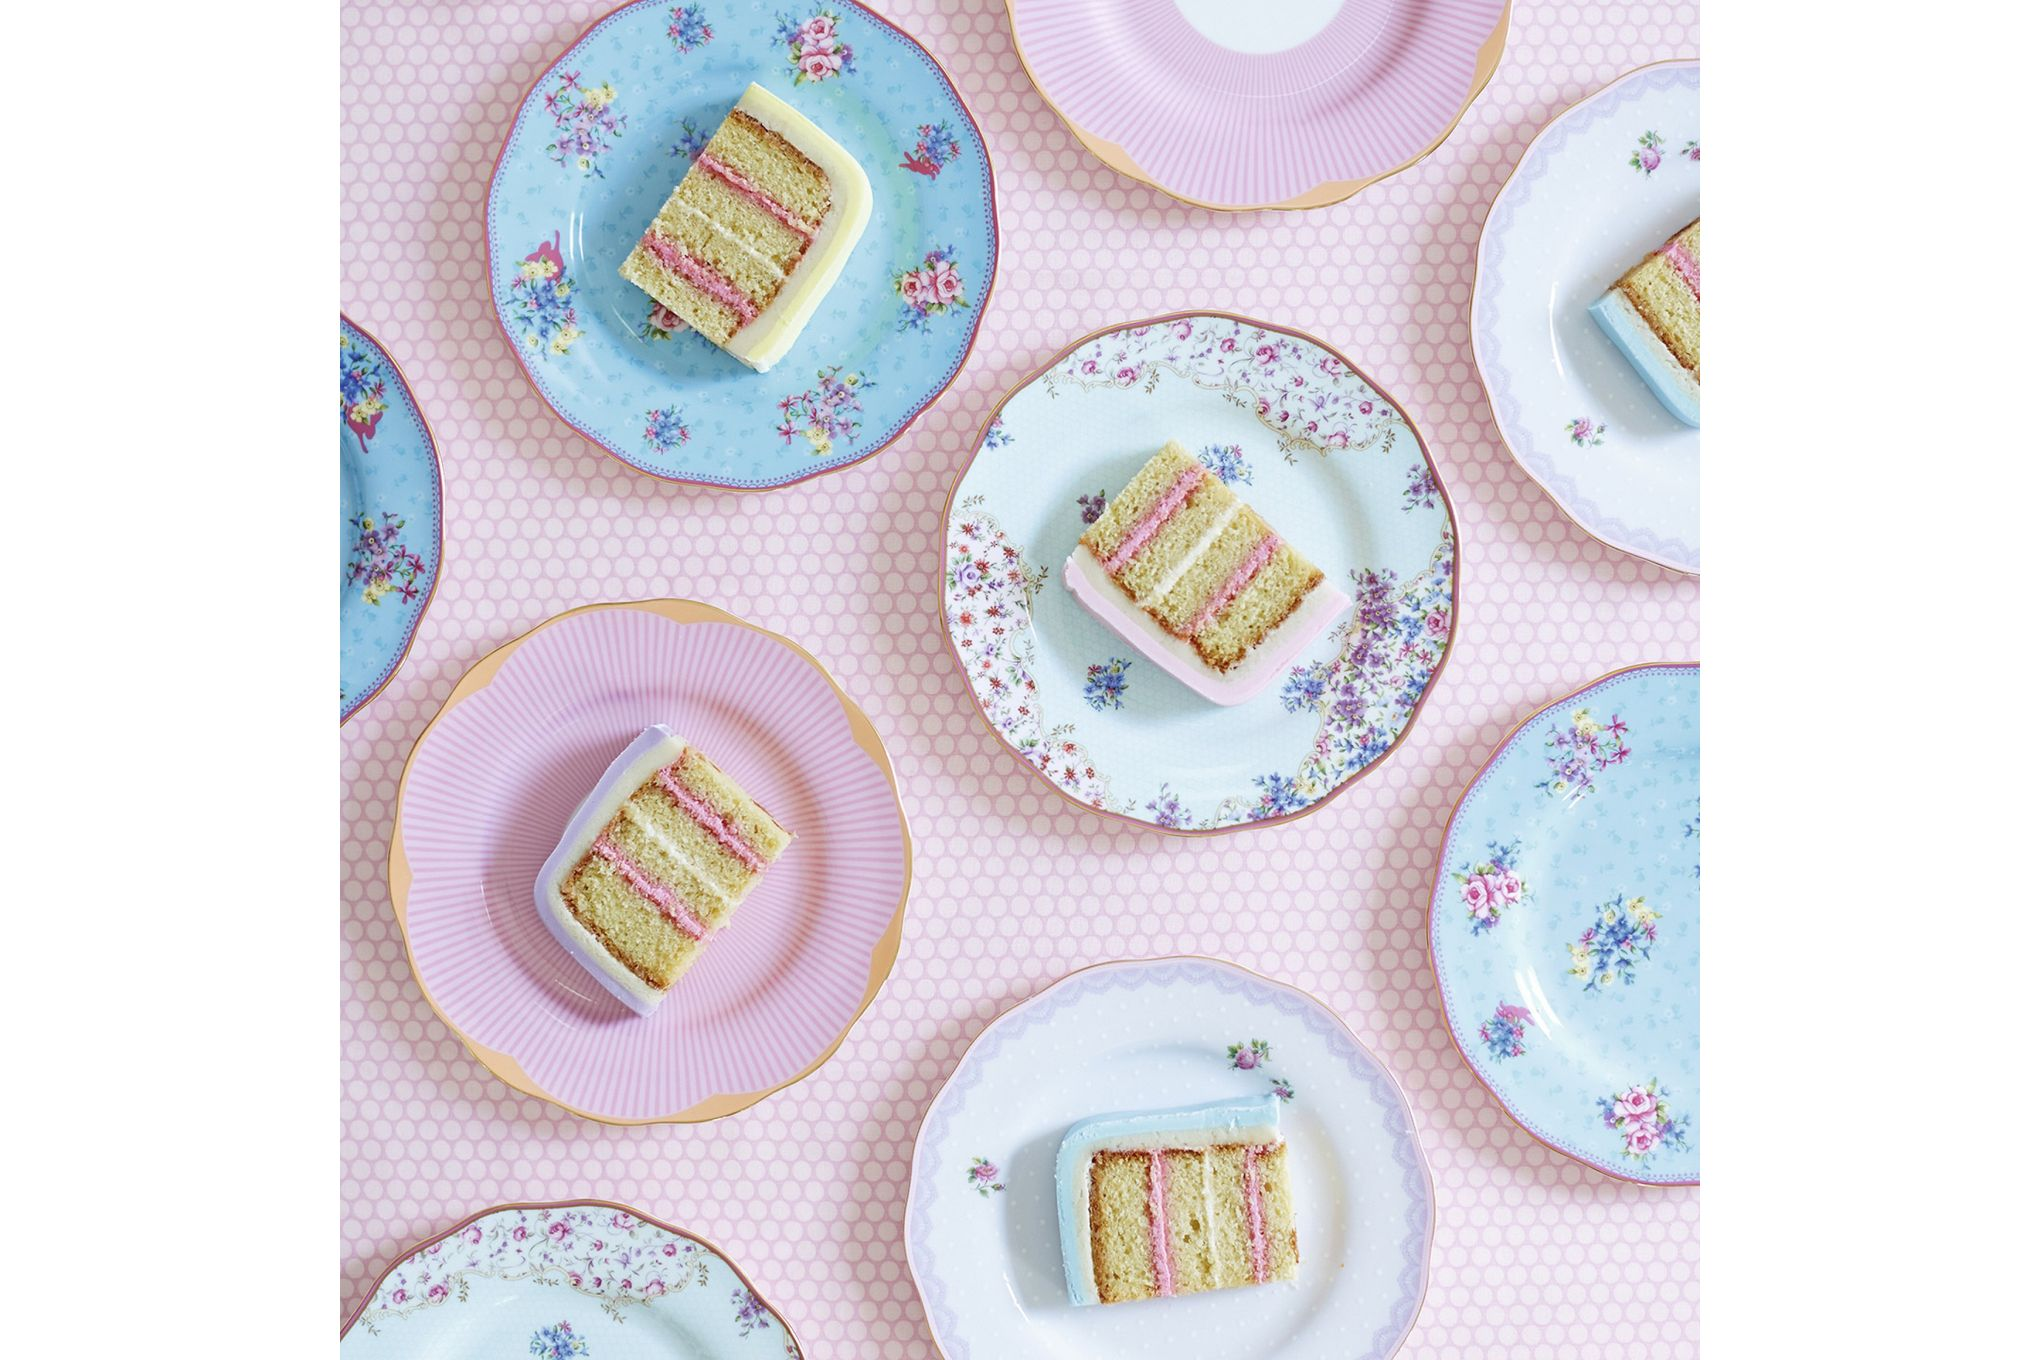 Royal Albert Candy Collection Set of Side Plates Set of 4 Mixed Plates 20cm thumb 3